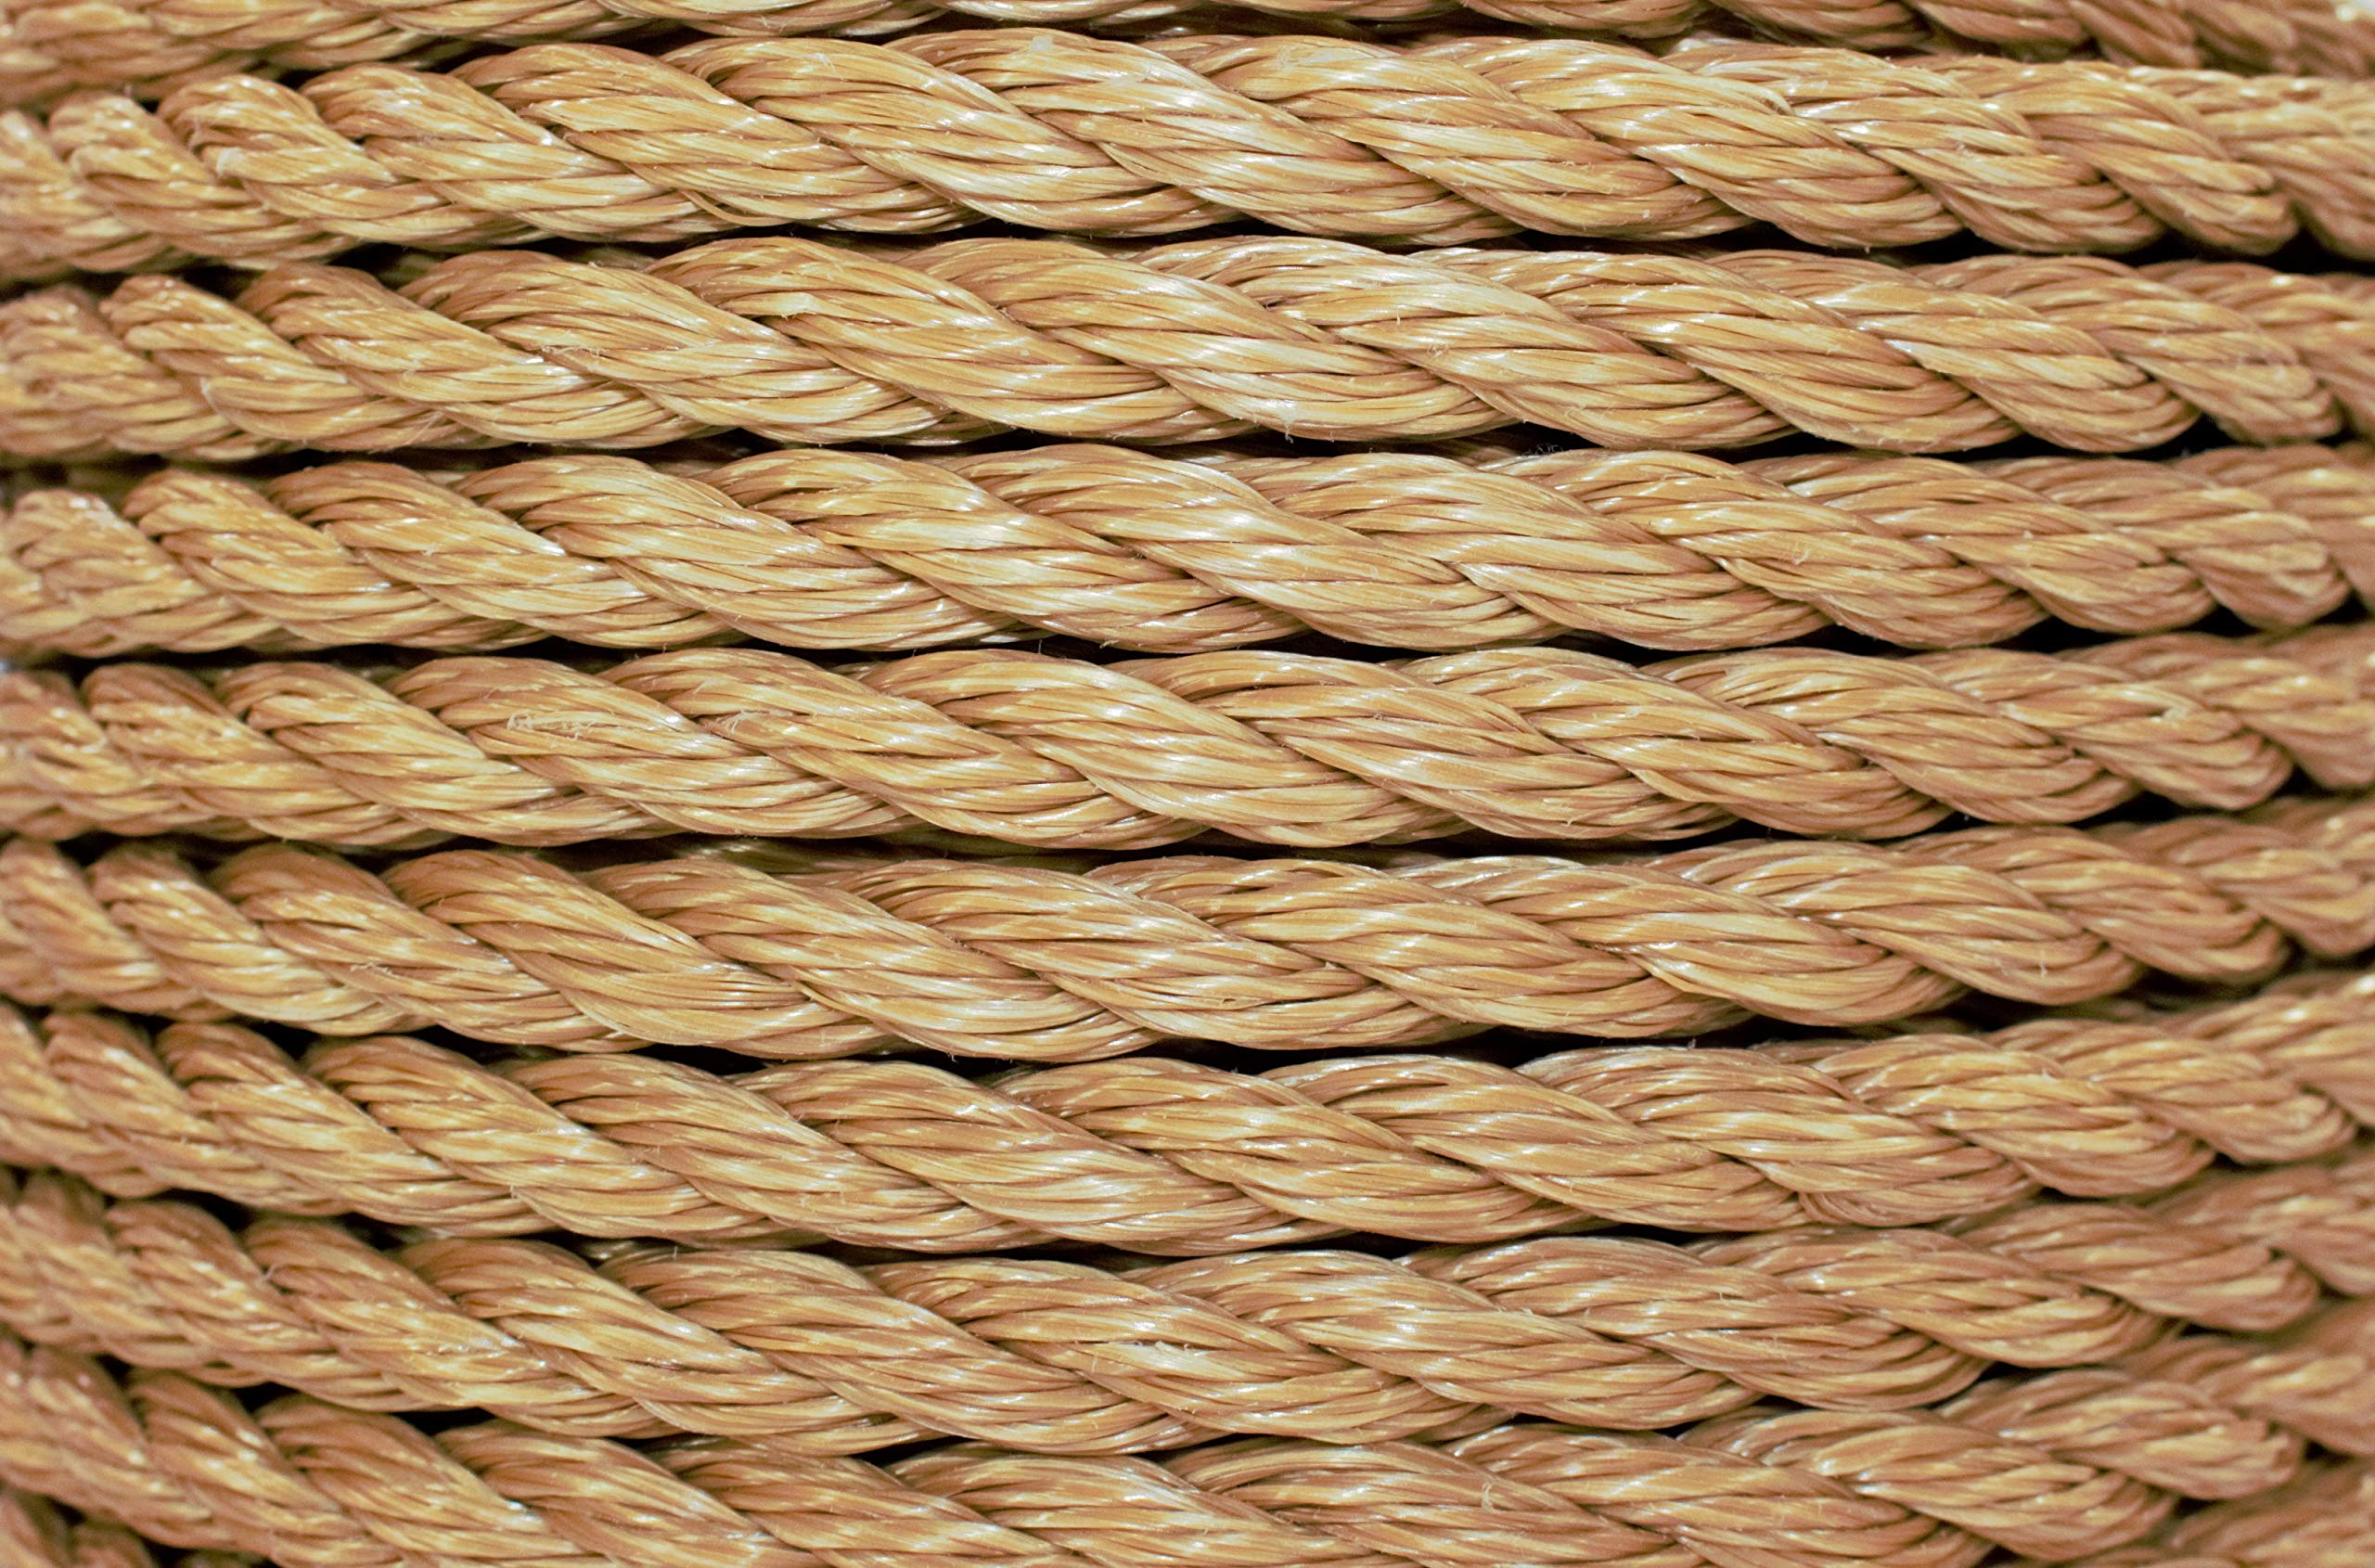 SGT KNOTS ProManila Rope (1/2 inch) UnManila Tan Twisted 3 Strand Polypropylene Cord - Moisture, UV, and Chemical Resistant - Marine, DIY Projects, Crafts, Commercial, Indoor/Outdoor (200 ft) by SGT KNOTS